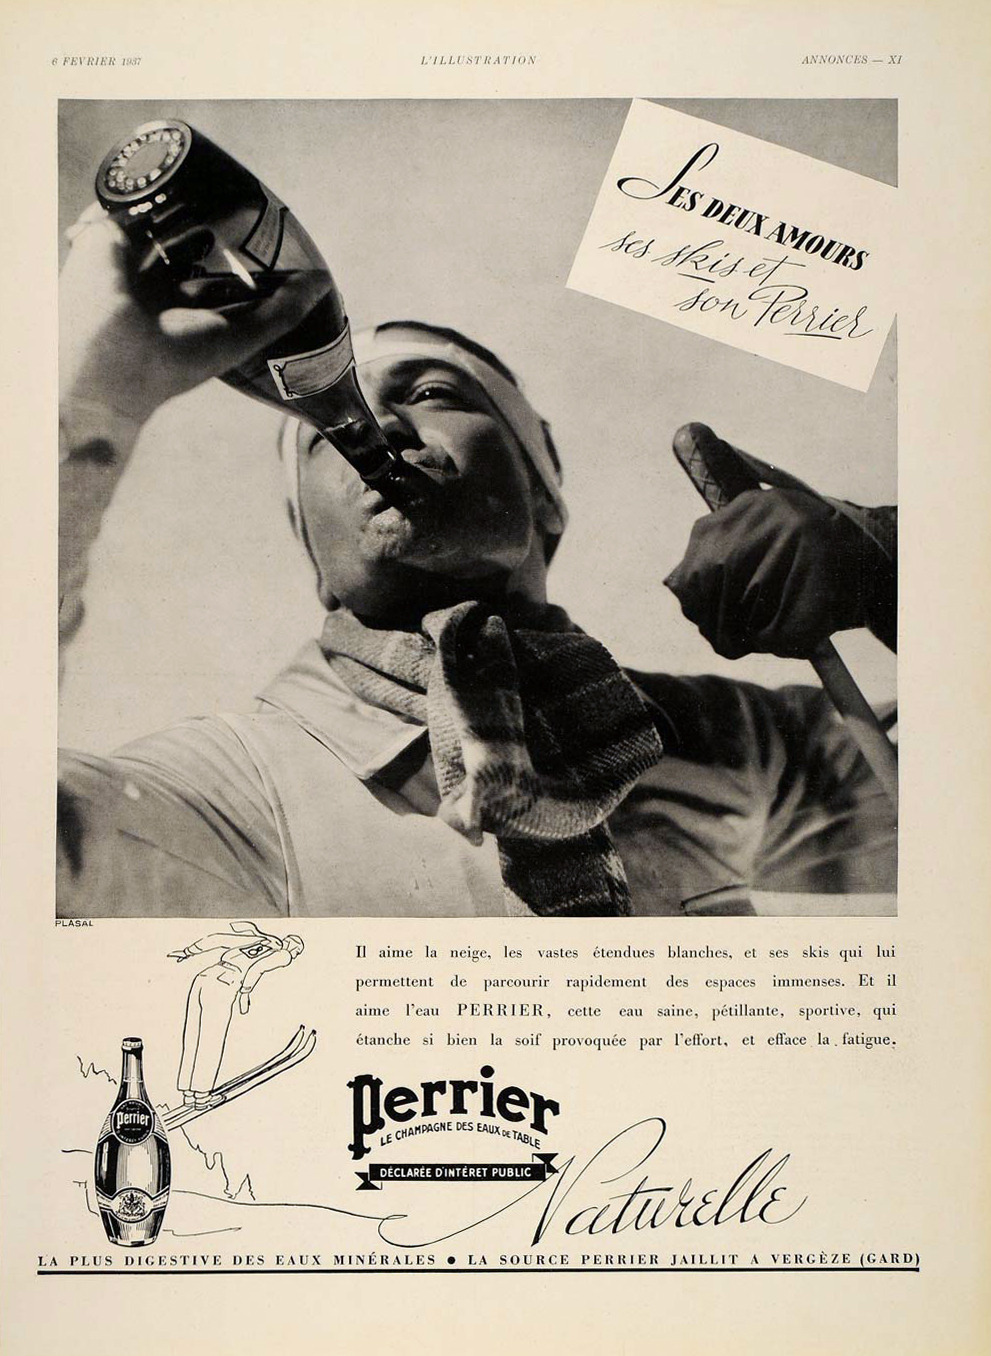 Perrier advertisement from the February 6, 1937 issue of L'Illustration.